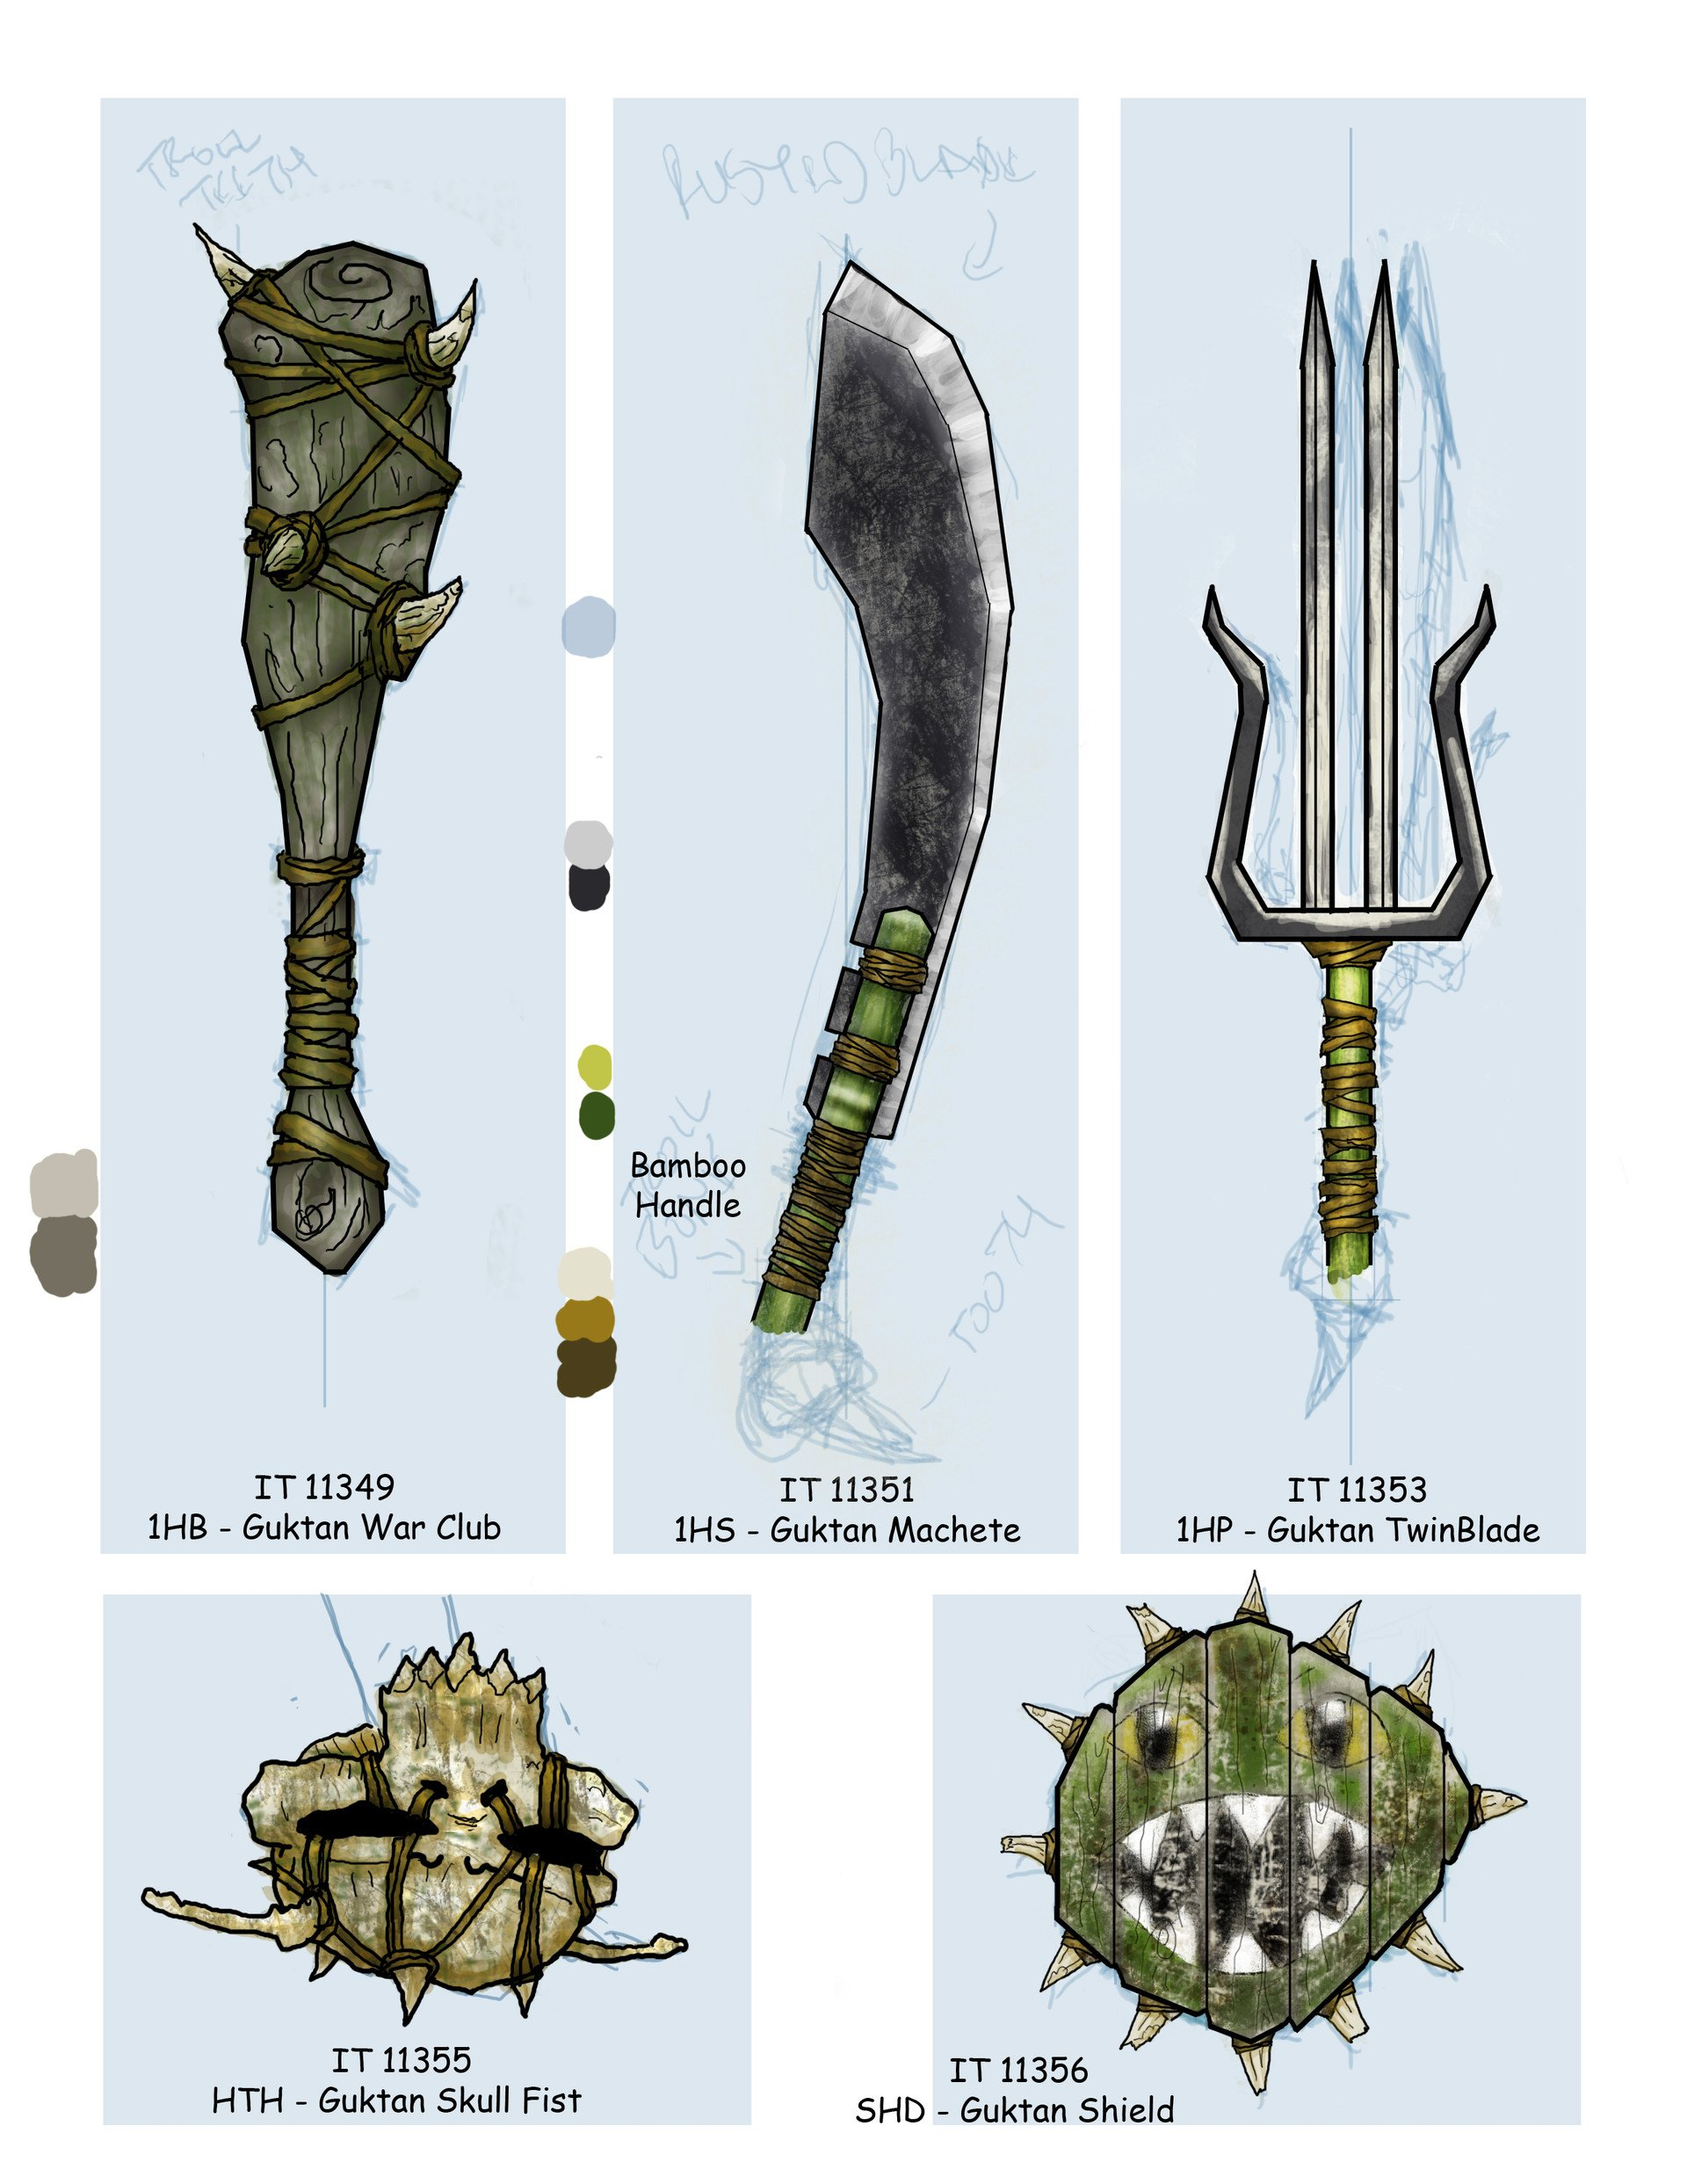 Illustrations of weapons by artist Kevin Burns. (Images courtesy of Burns' ArtStation page.)